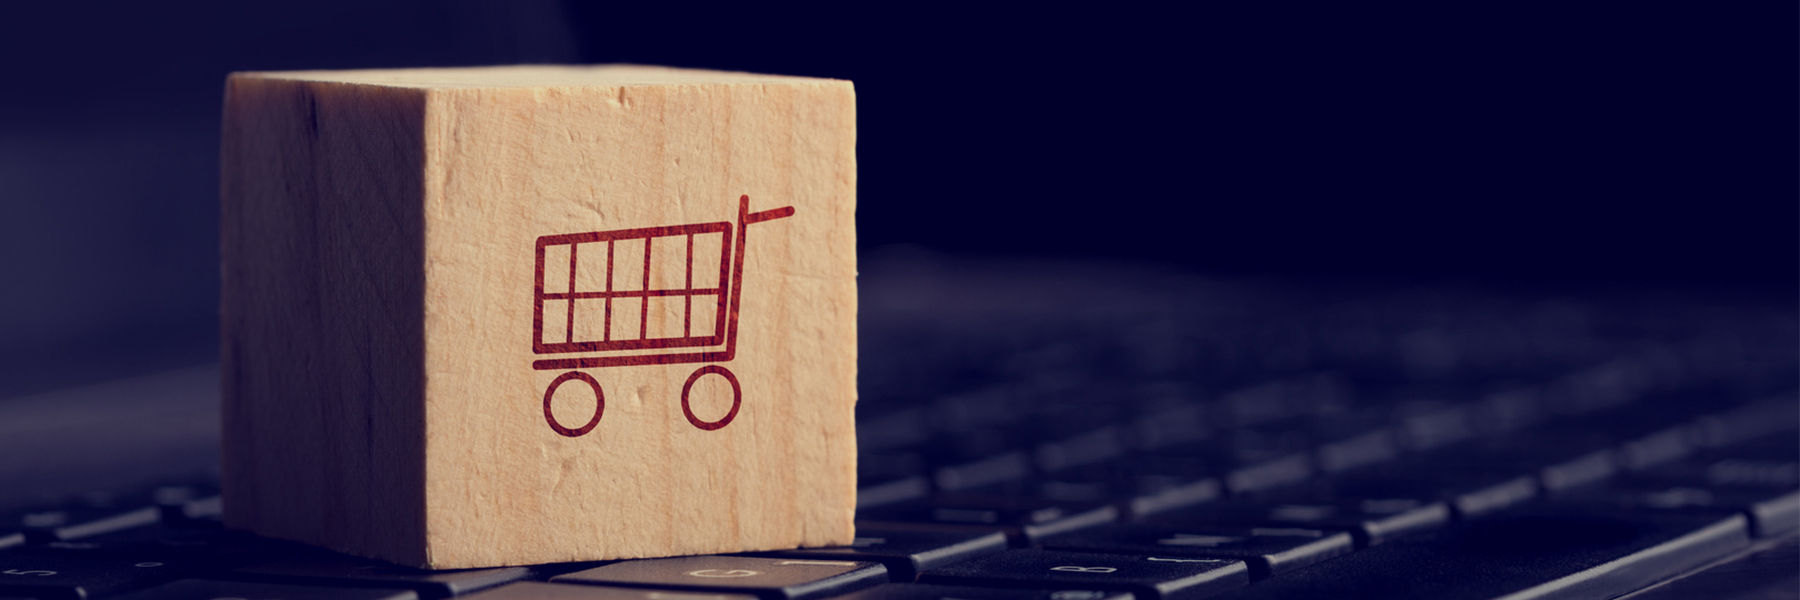 the coordination of e-commerce and logistics